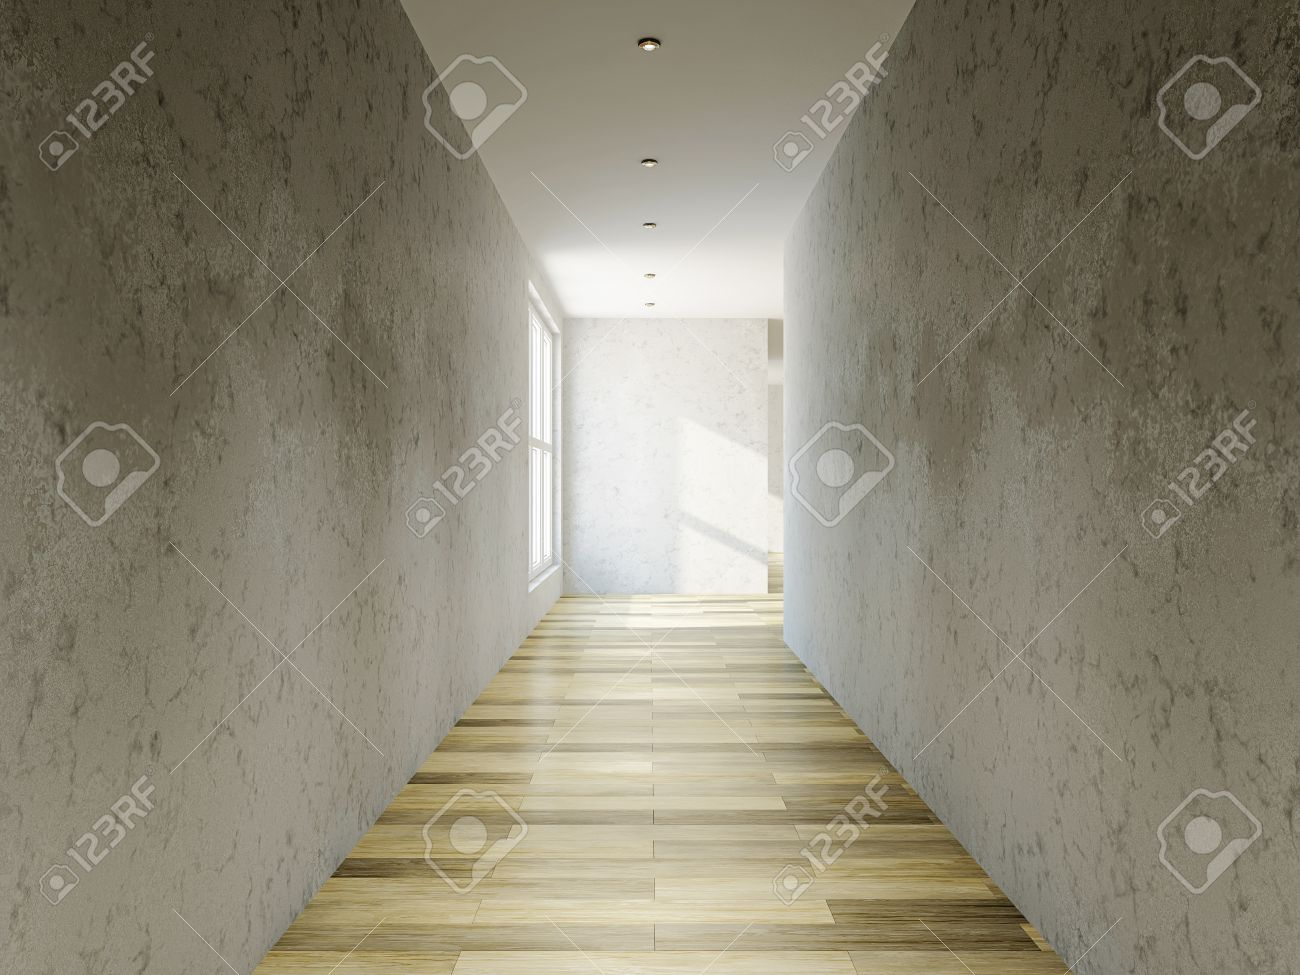 The empty long corridor with concrete wall Stock Photo - 21550658